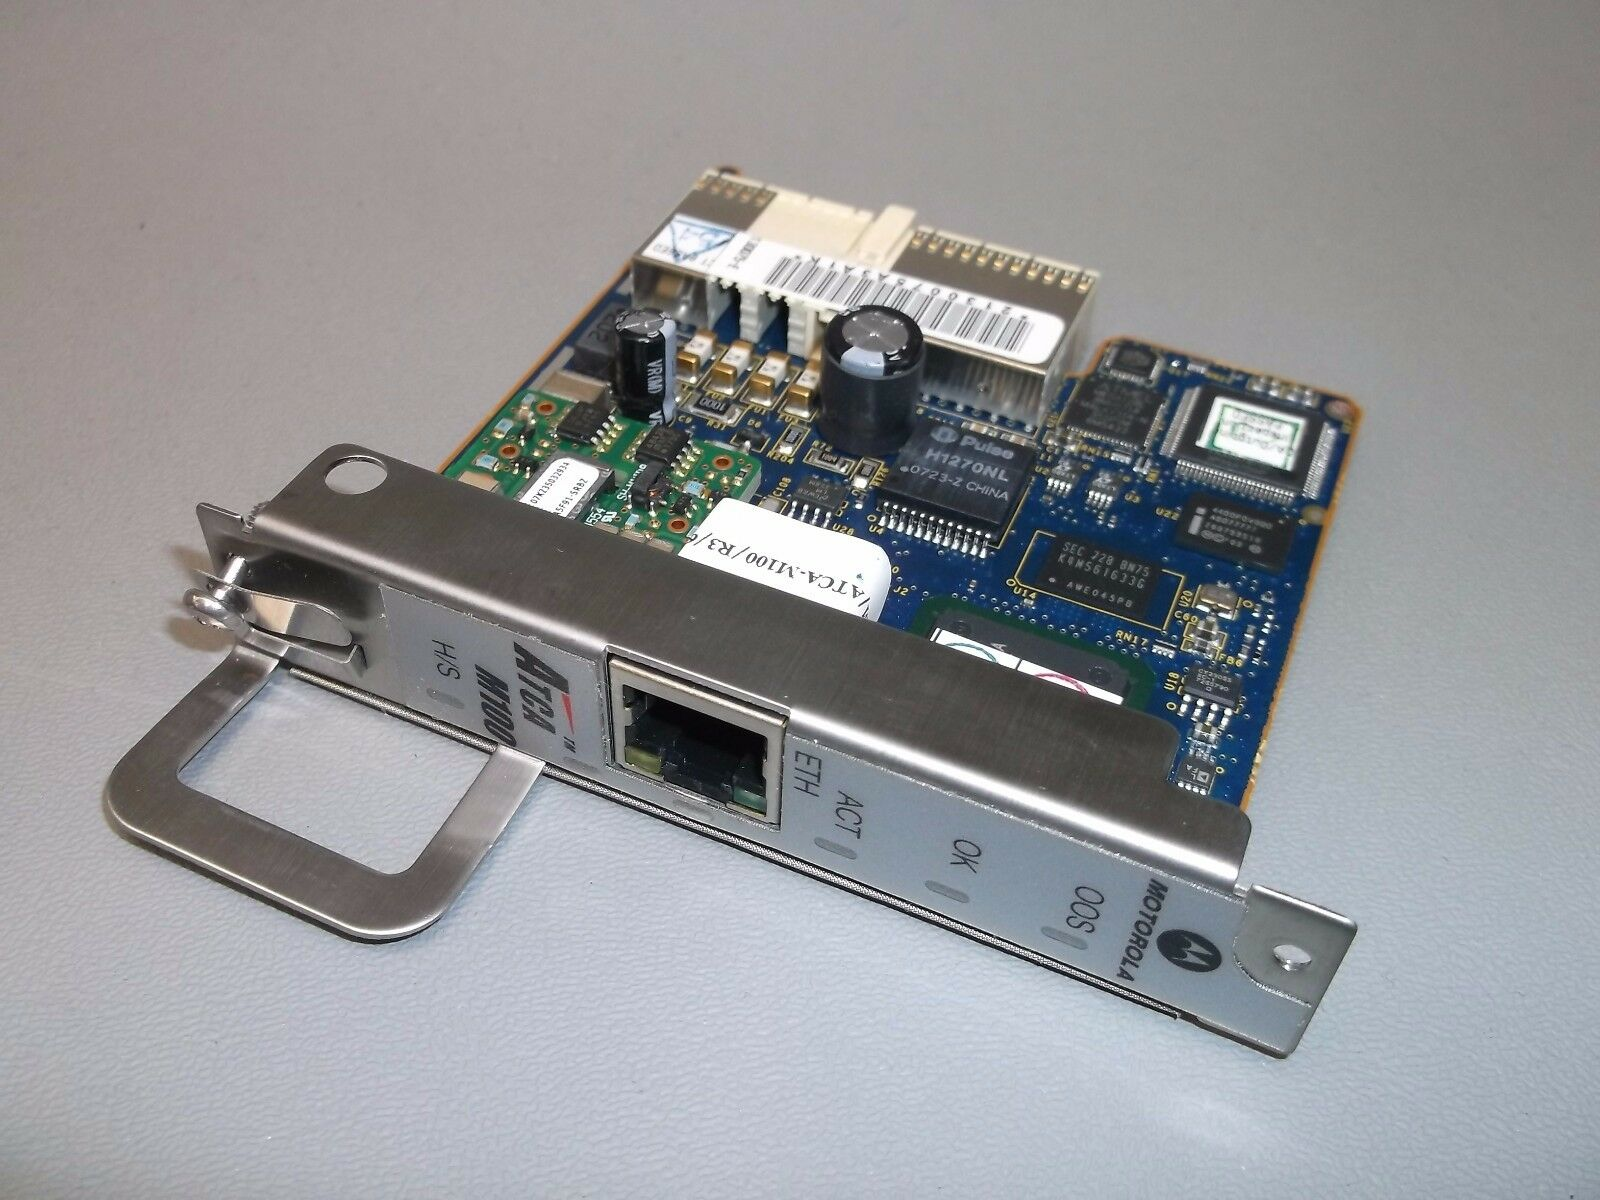 MOTOROLA CENTELLIS ATCA-M100 MANAGEMENT CONTROL CARD ***30 DAY WARRANTY***. Available Now for 199.99